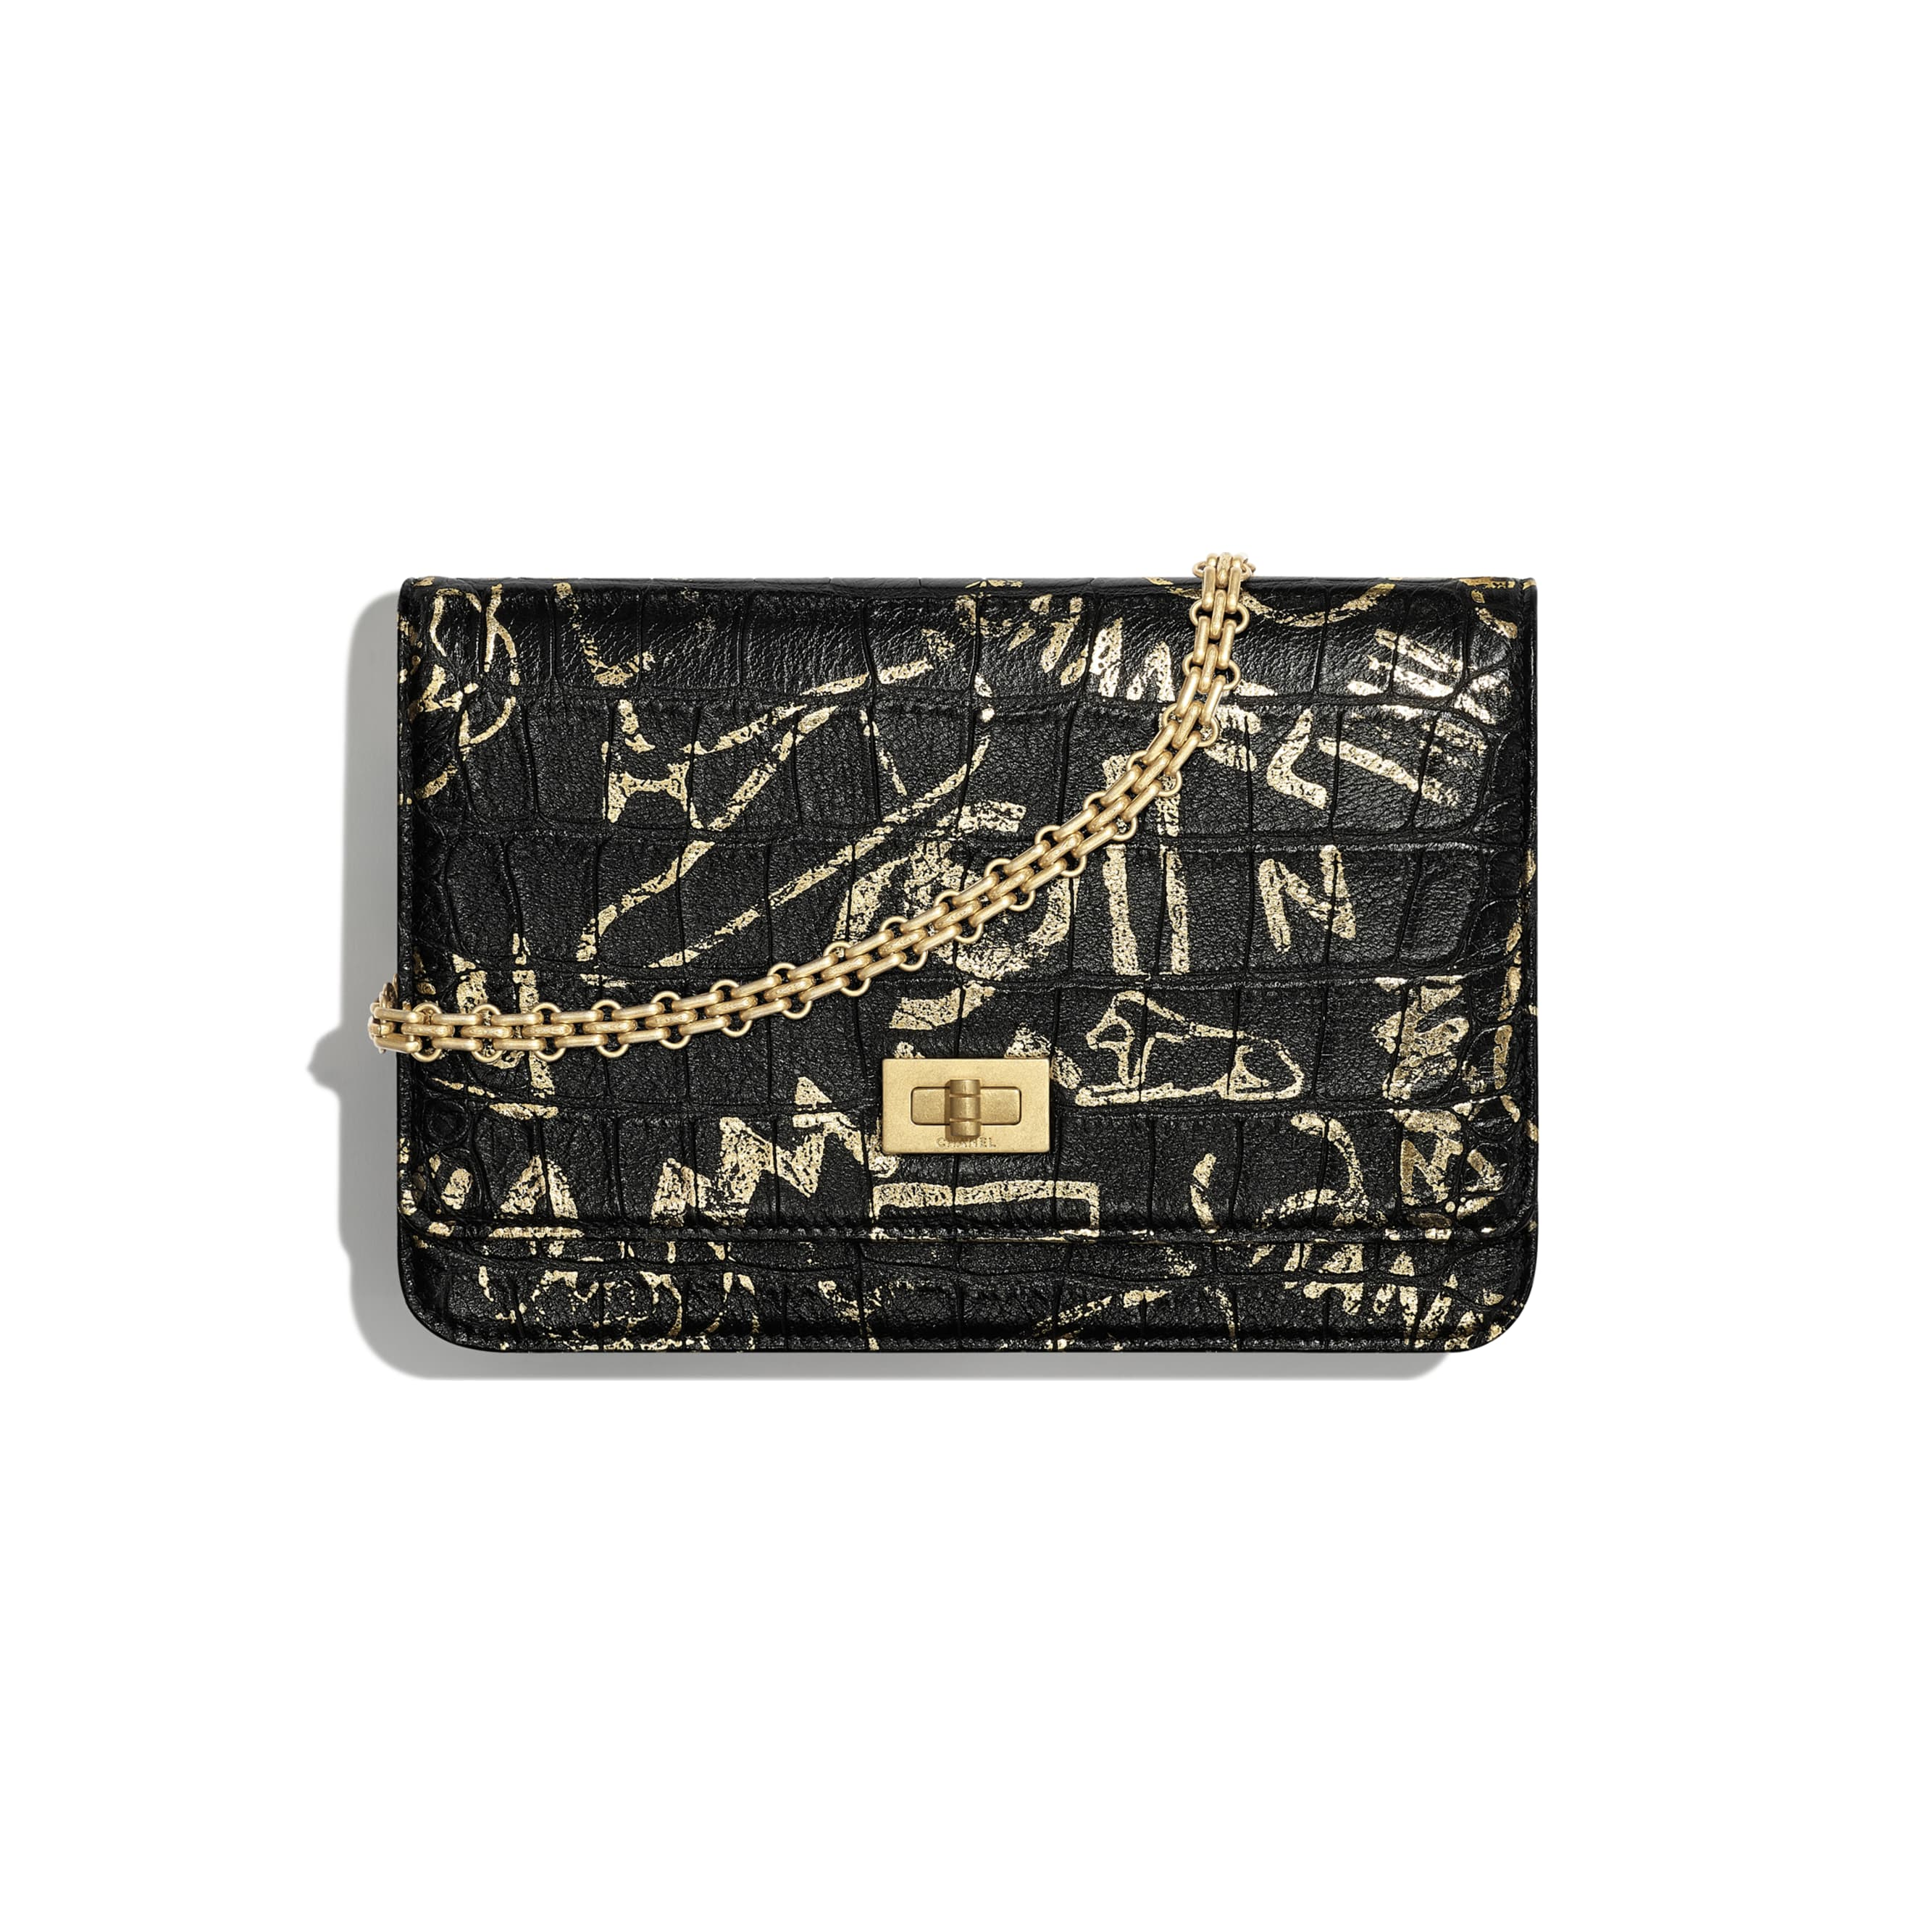 2.55 Wallet on Chain - Black & Gold - Crocodile Embossed Printed Leather & Gold-Tone Metal - Default view - see standard sized version